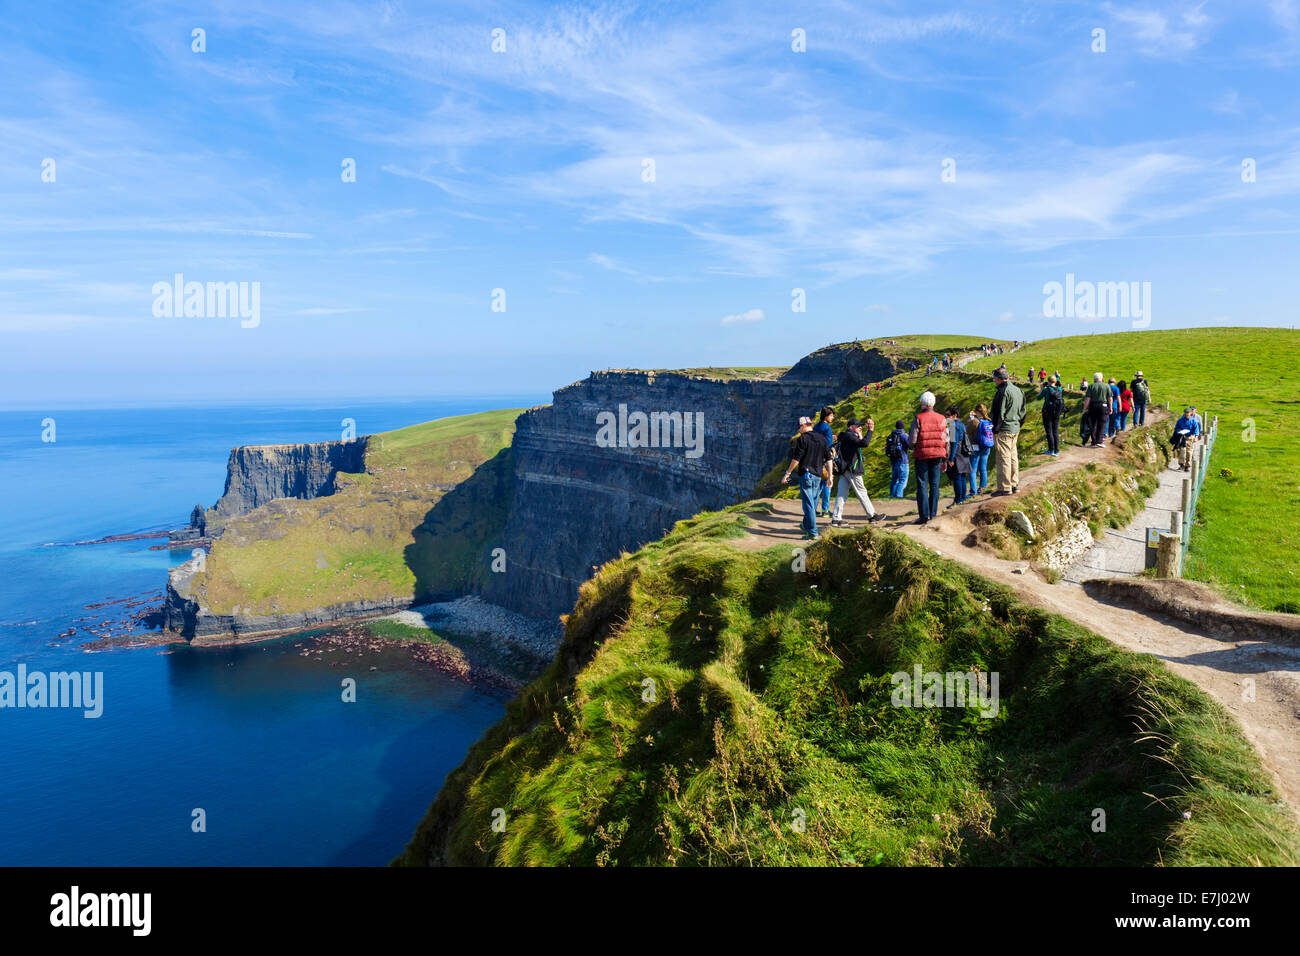 Tourists at the Cliffs of Moher, The Burren, County Clare, Republic of Ireland - Stock Image